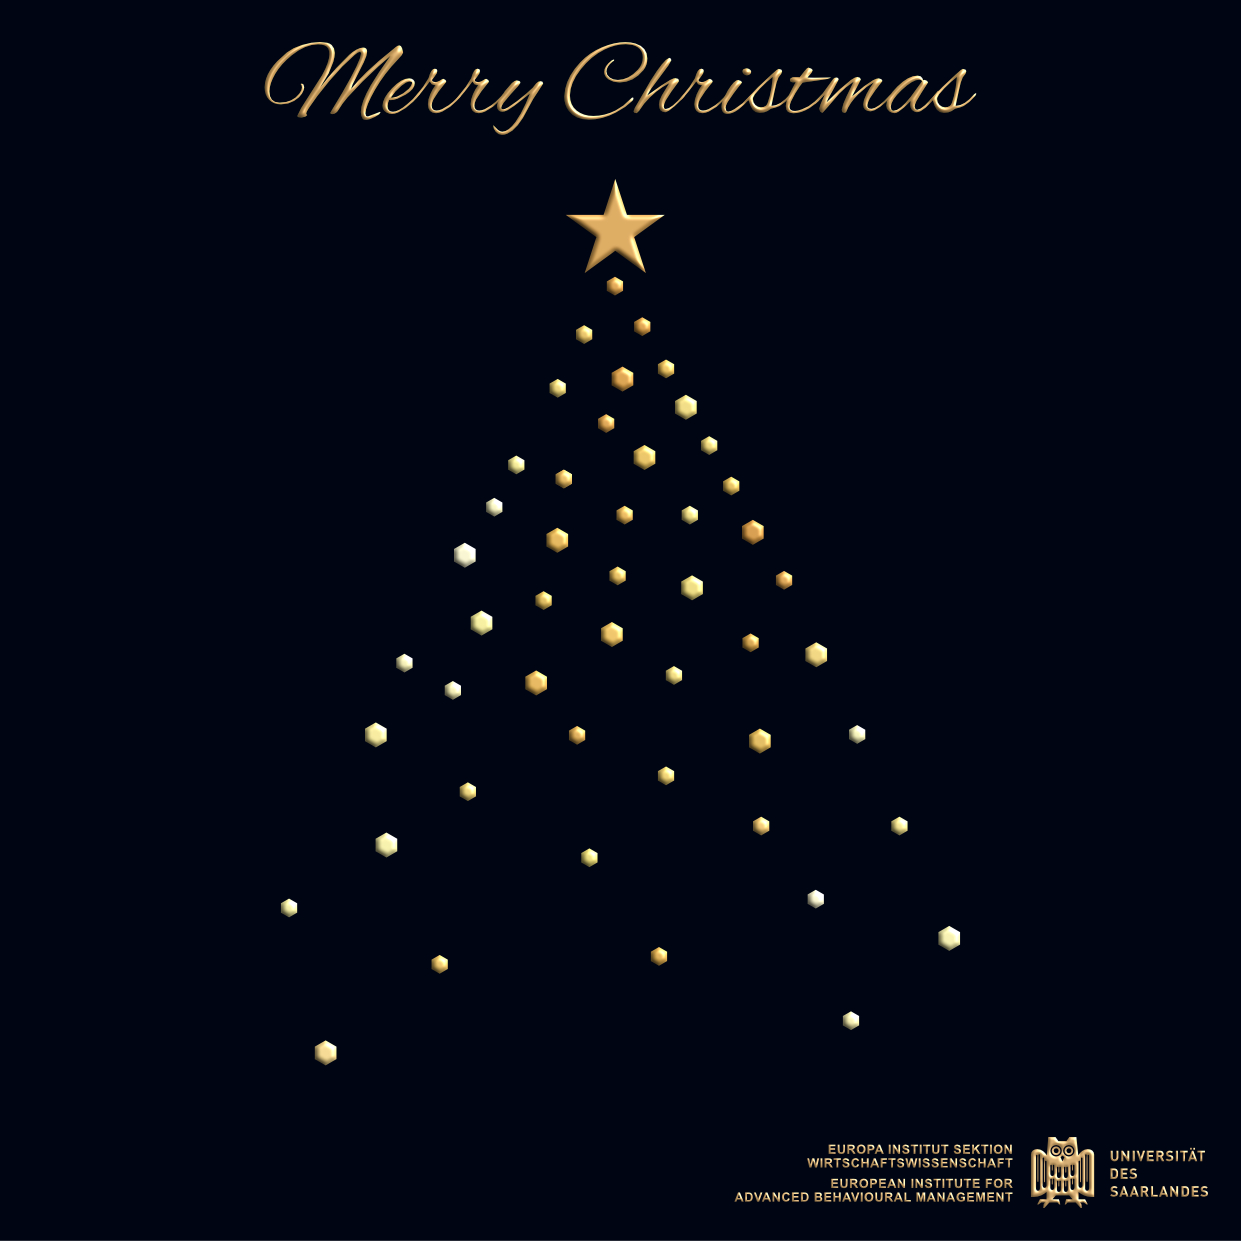 We wish you all a merry and peaceful Christmas and best wishes for a Happy New Year !